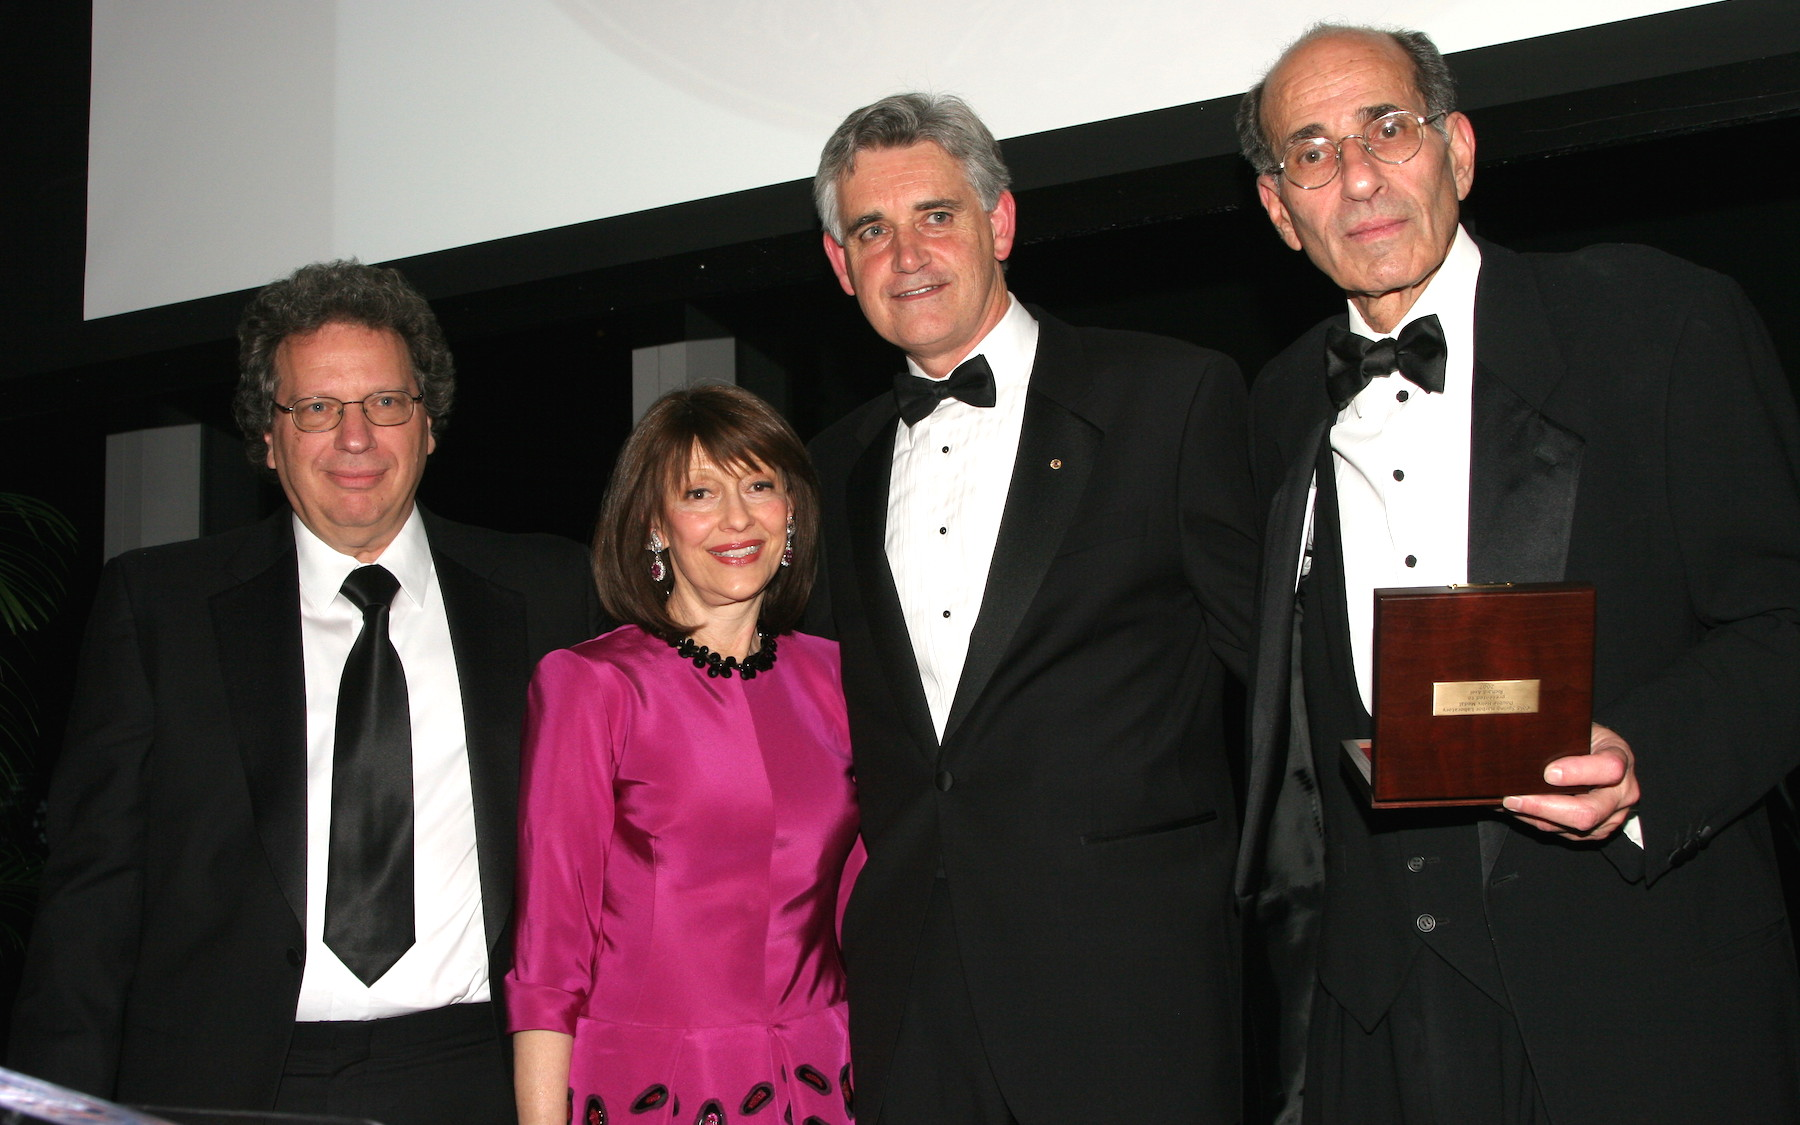 The Double Helix Medals for Scientific Achievement were presented to Dr. Michael Wigler (far left), and Dr. Richard Axel (far right), at Cold Spring Harbor Laboratory's 2007 Double Helix Medals Dinner, November 8, 2007. Pictured with the honorees is Evelyn Lauder, who presented the awards, and Dr. Bruce Stillman, CSHL President